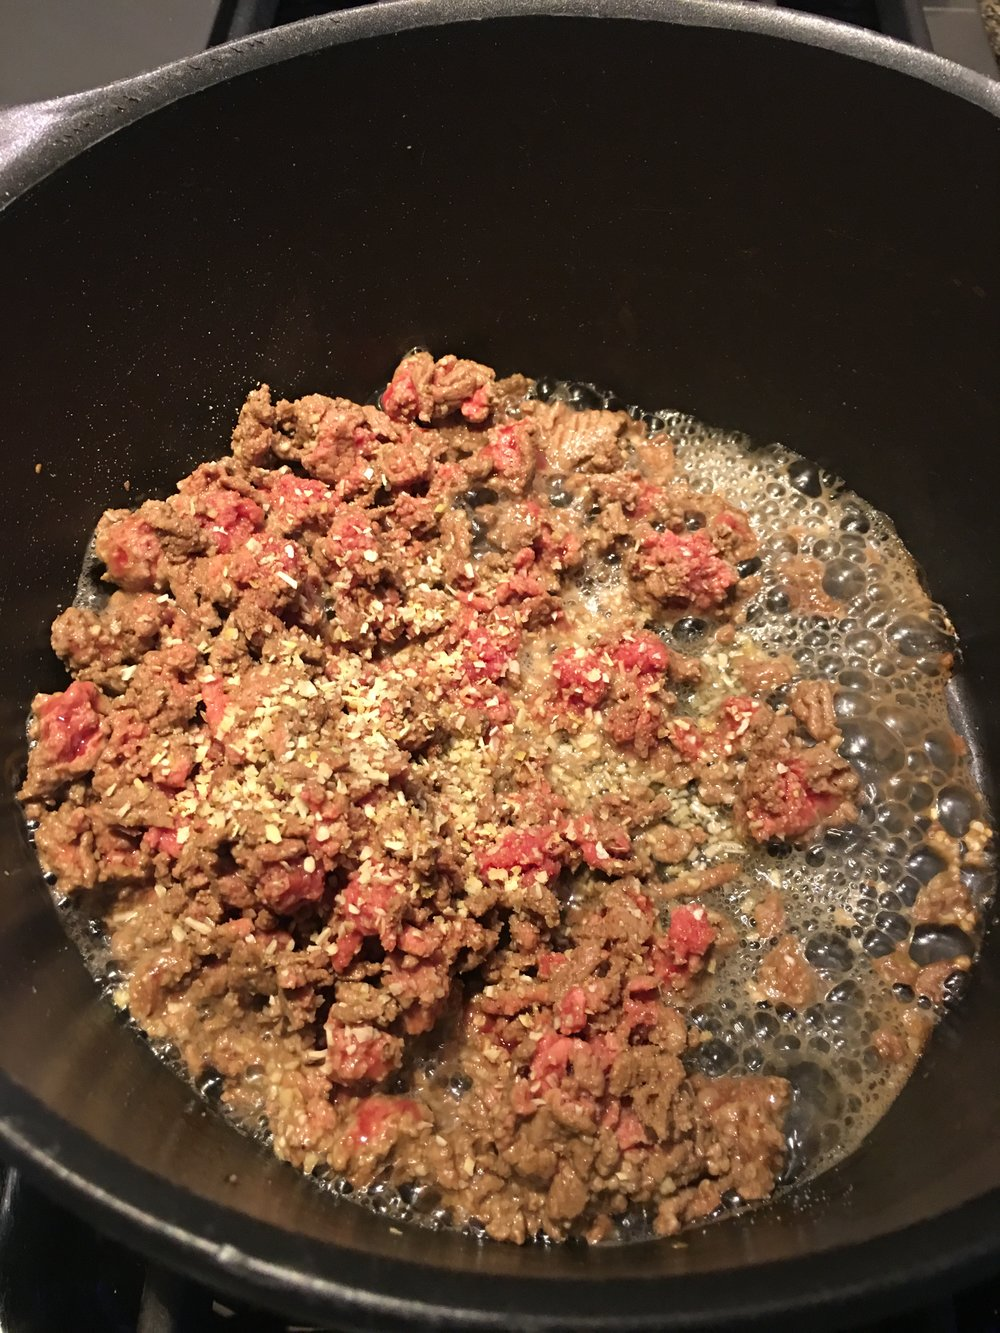 Ground beef being browned in a skillet